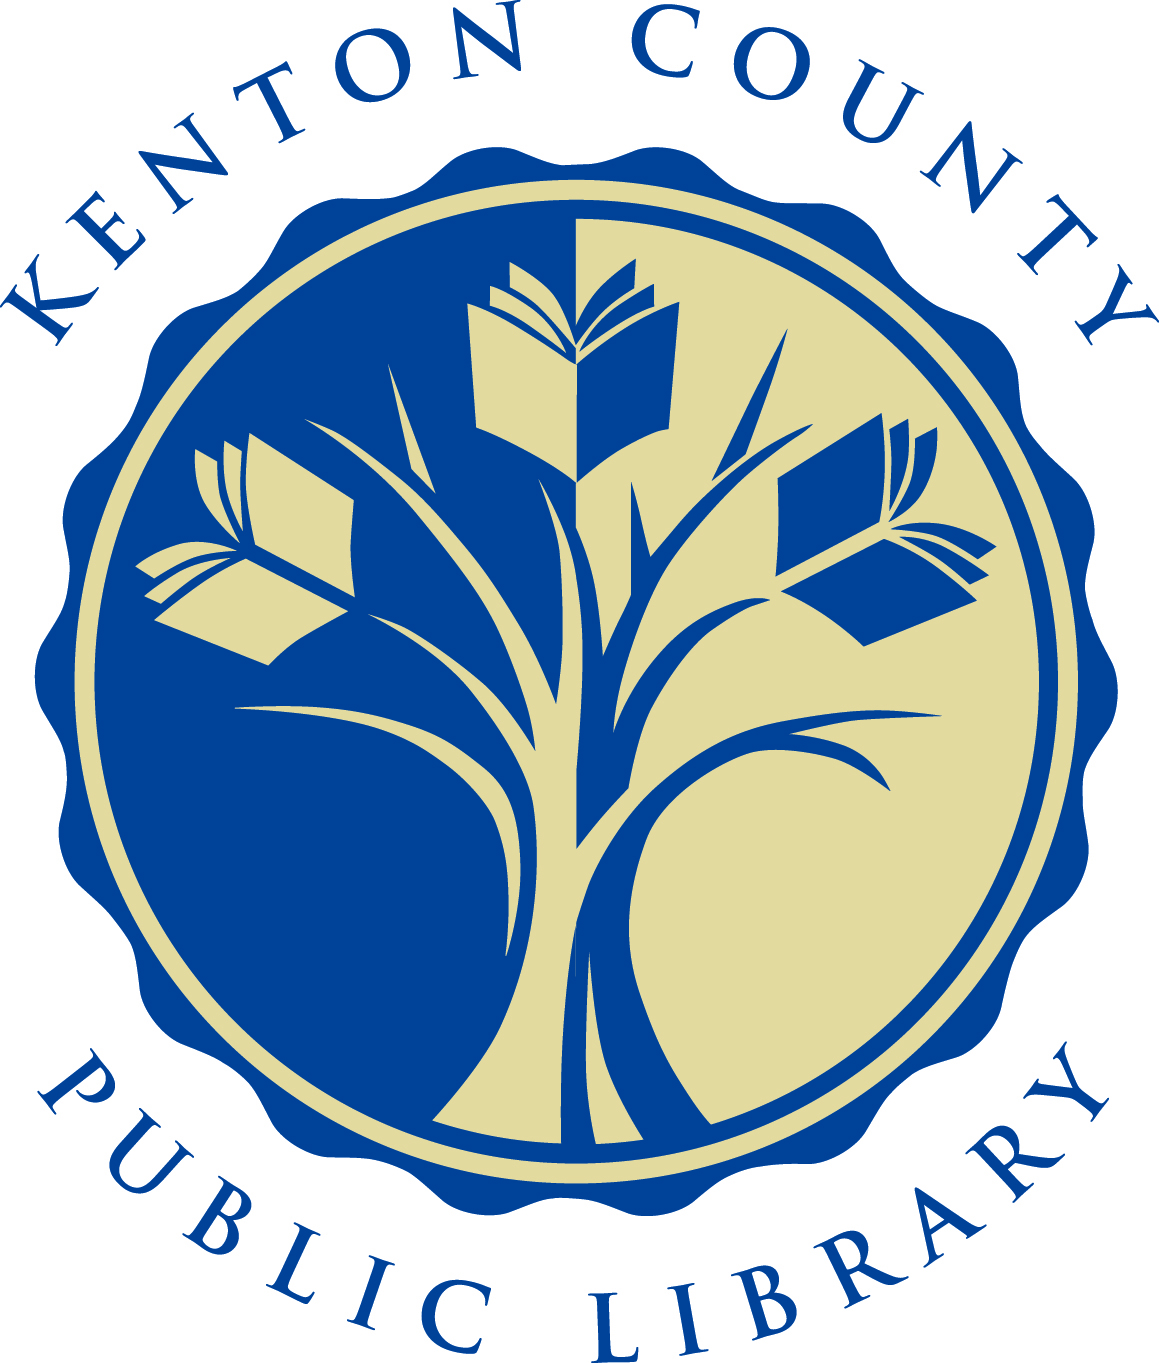 Kenton Co Library logo